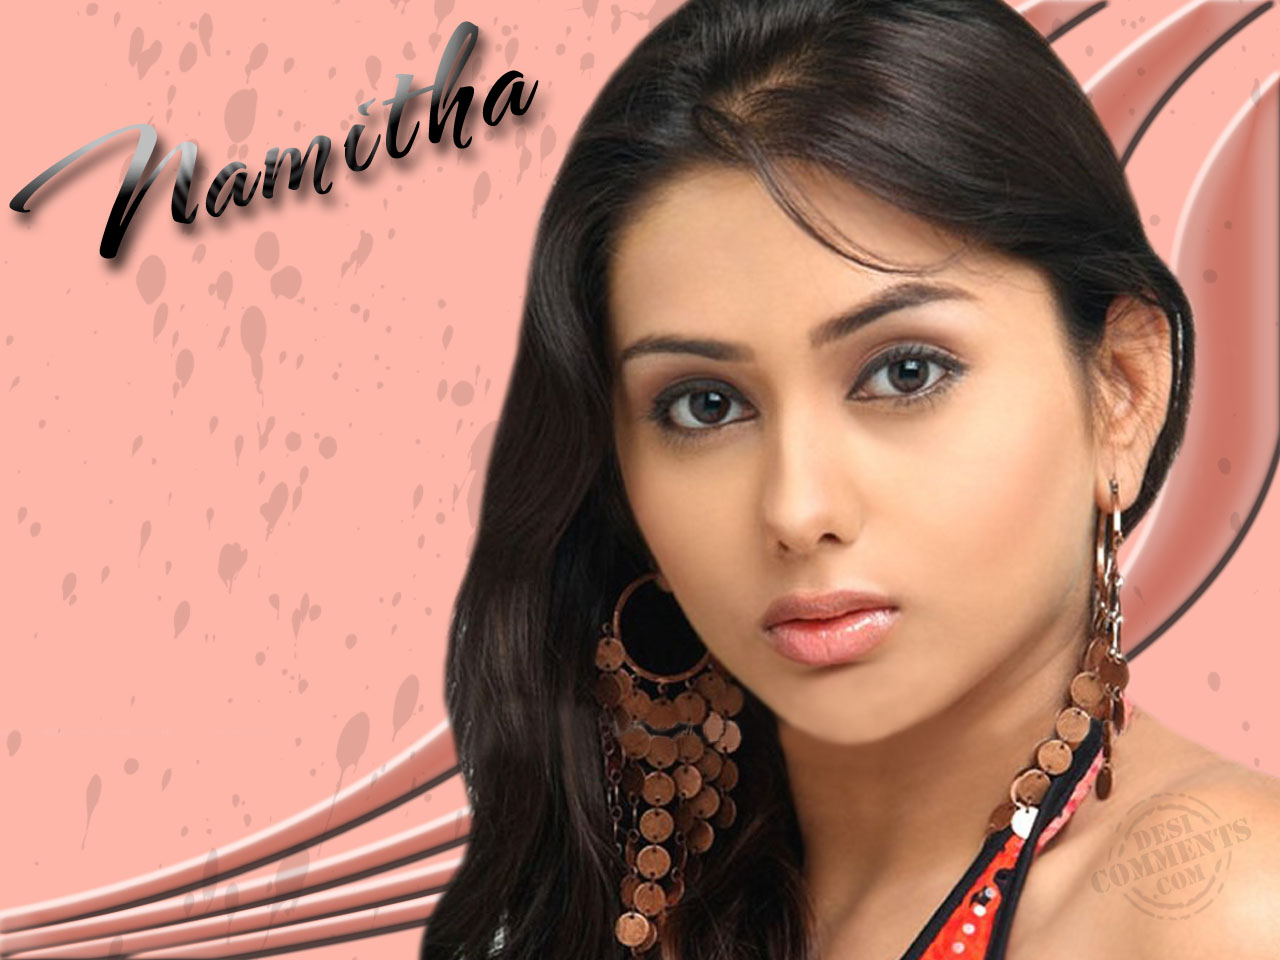 Indian Girls Photos | Images | Pics & Wallpapers Download